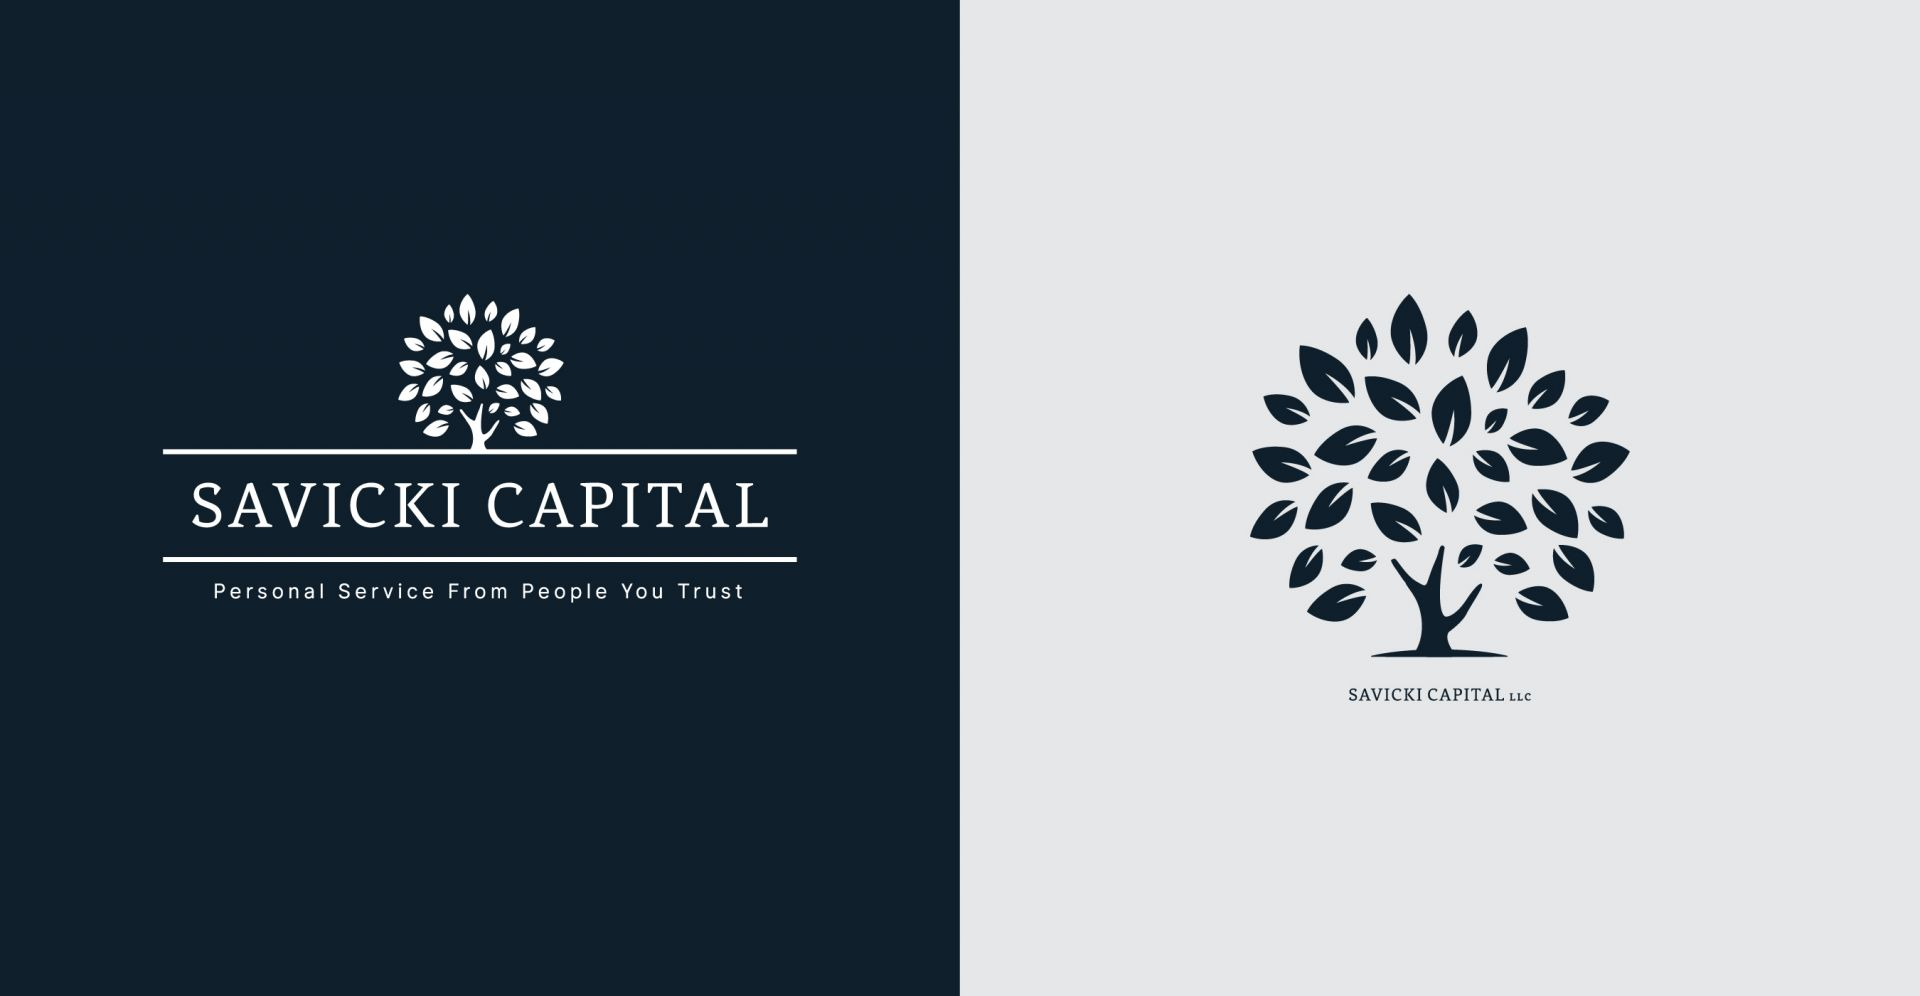 Savicki Capital Branding Treatment